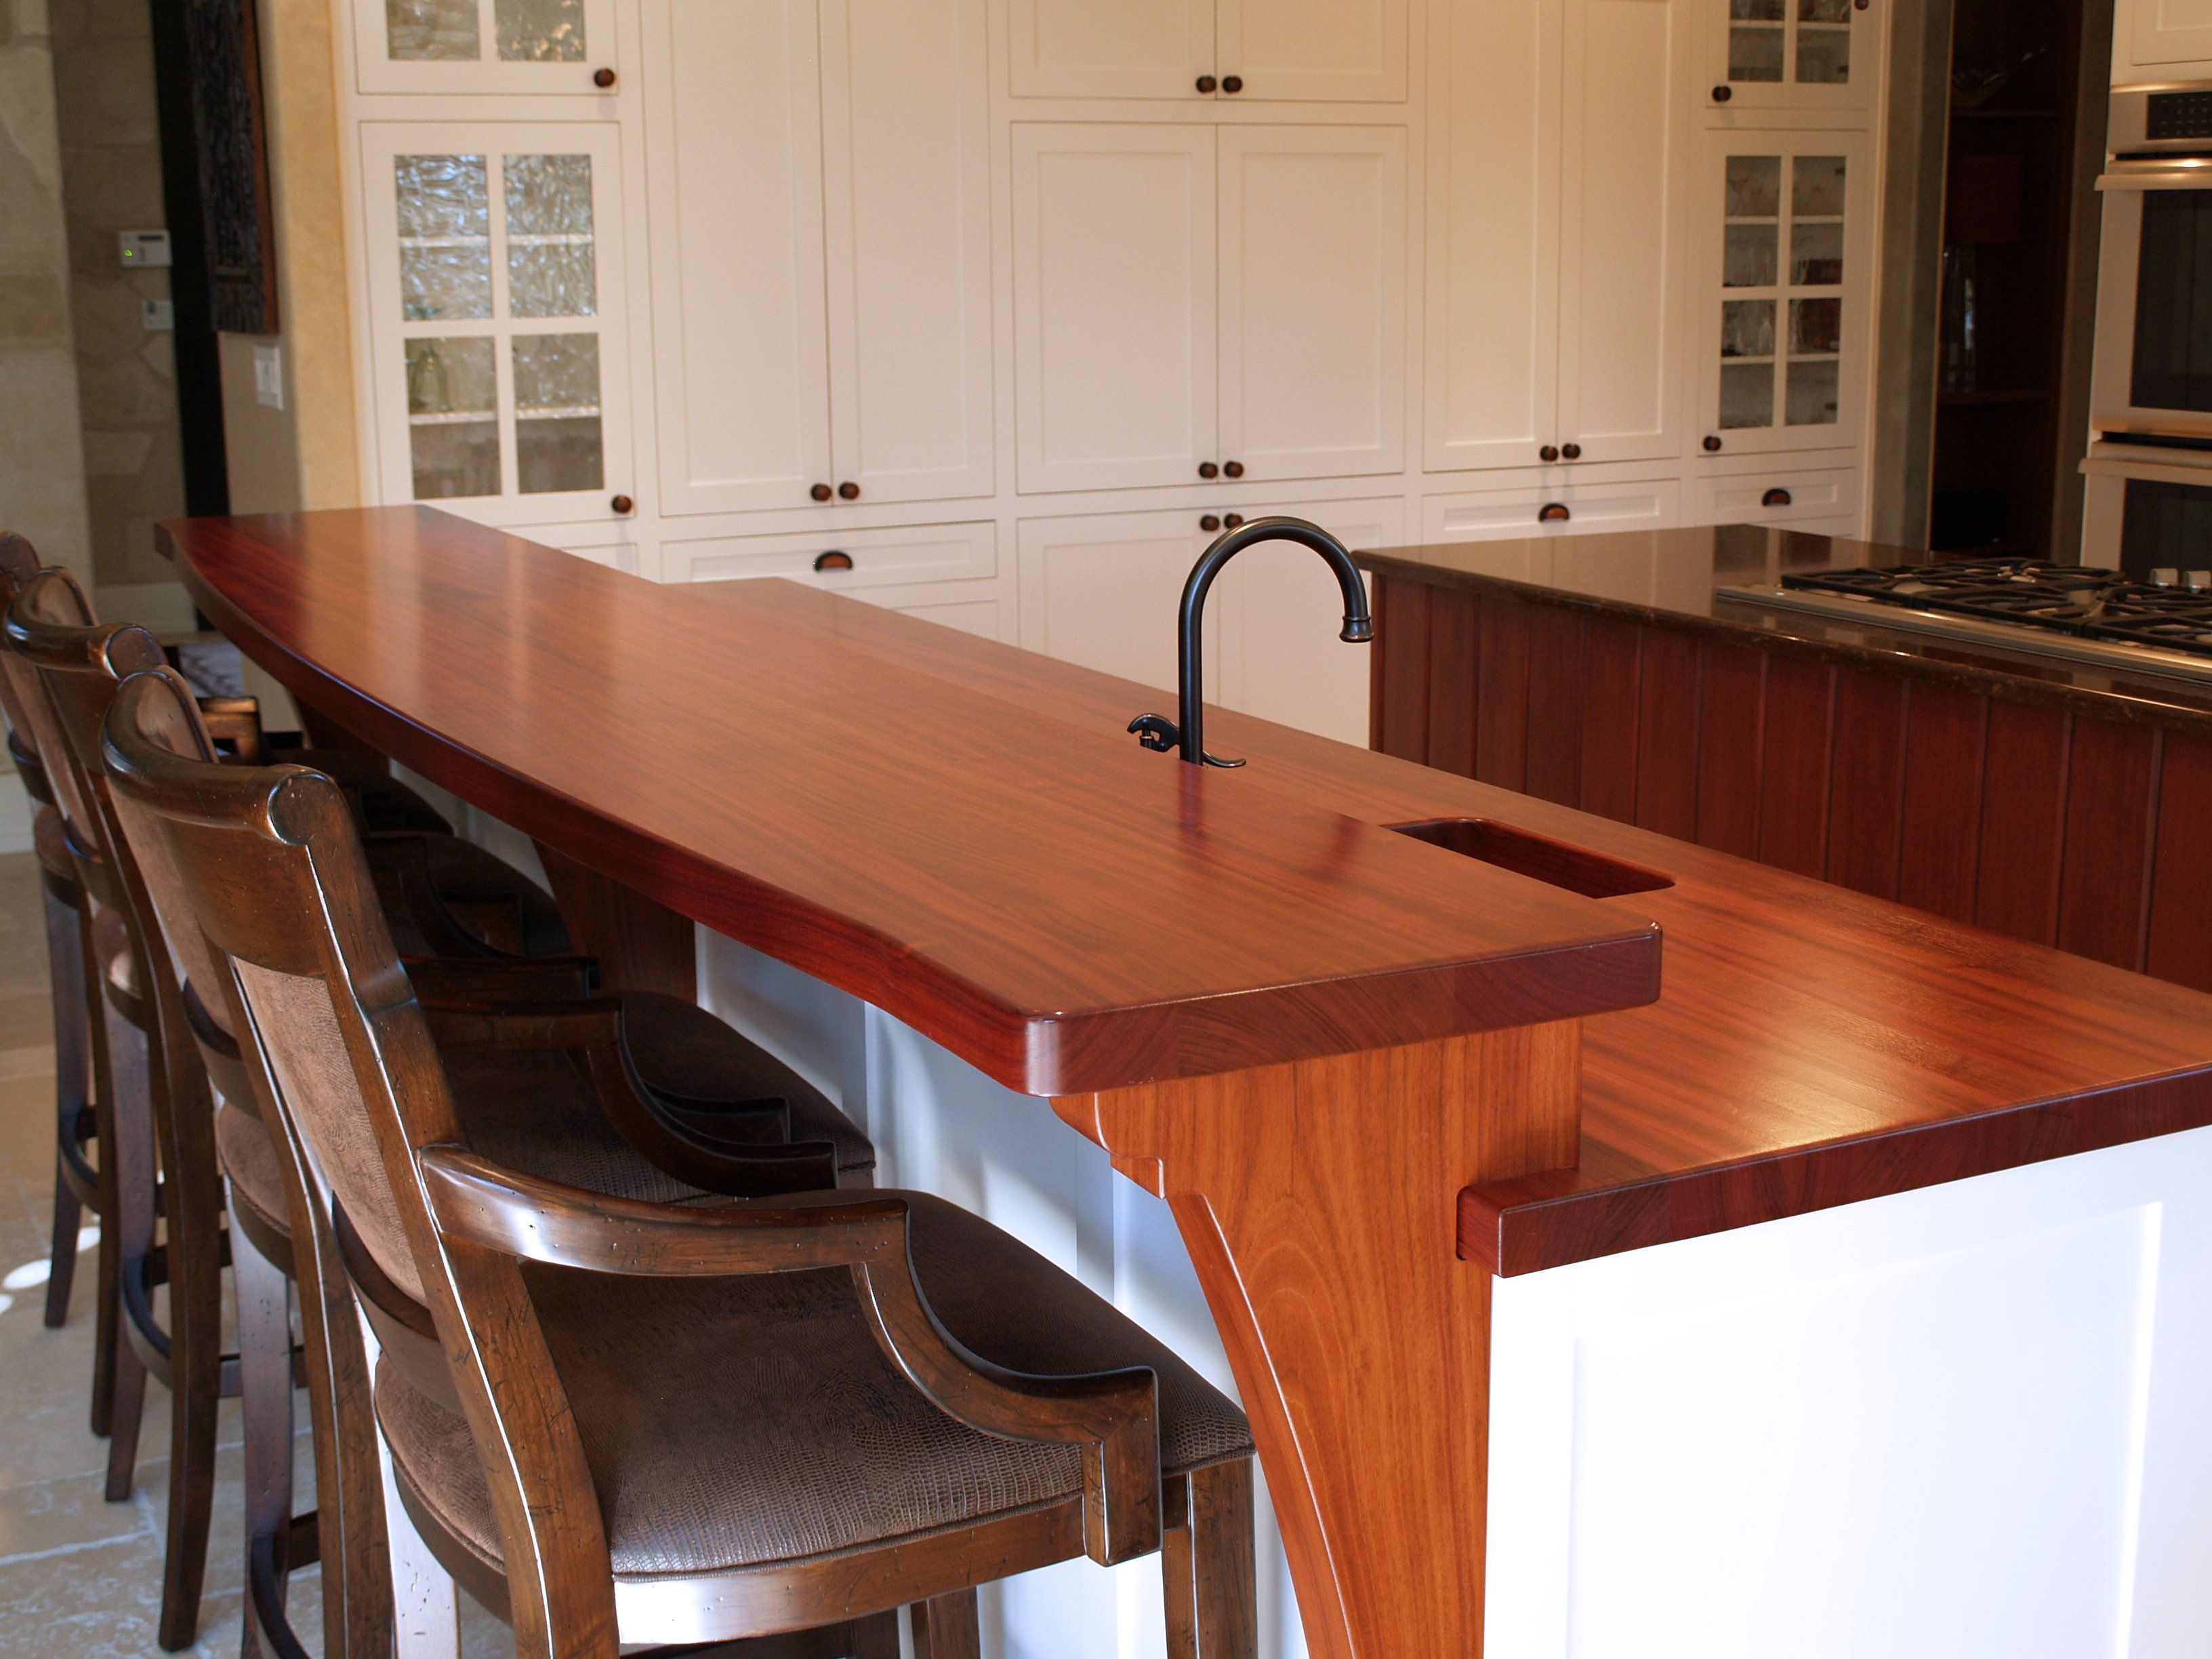 Jatoba Wood Countertop Gallery by DeVos Custom Woodworking